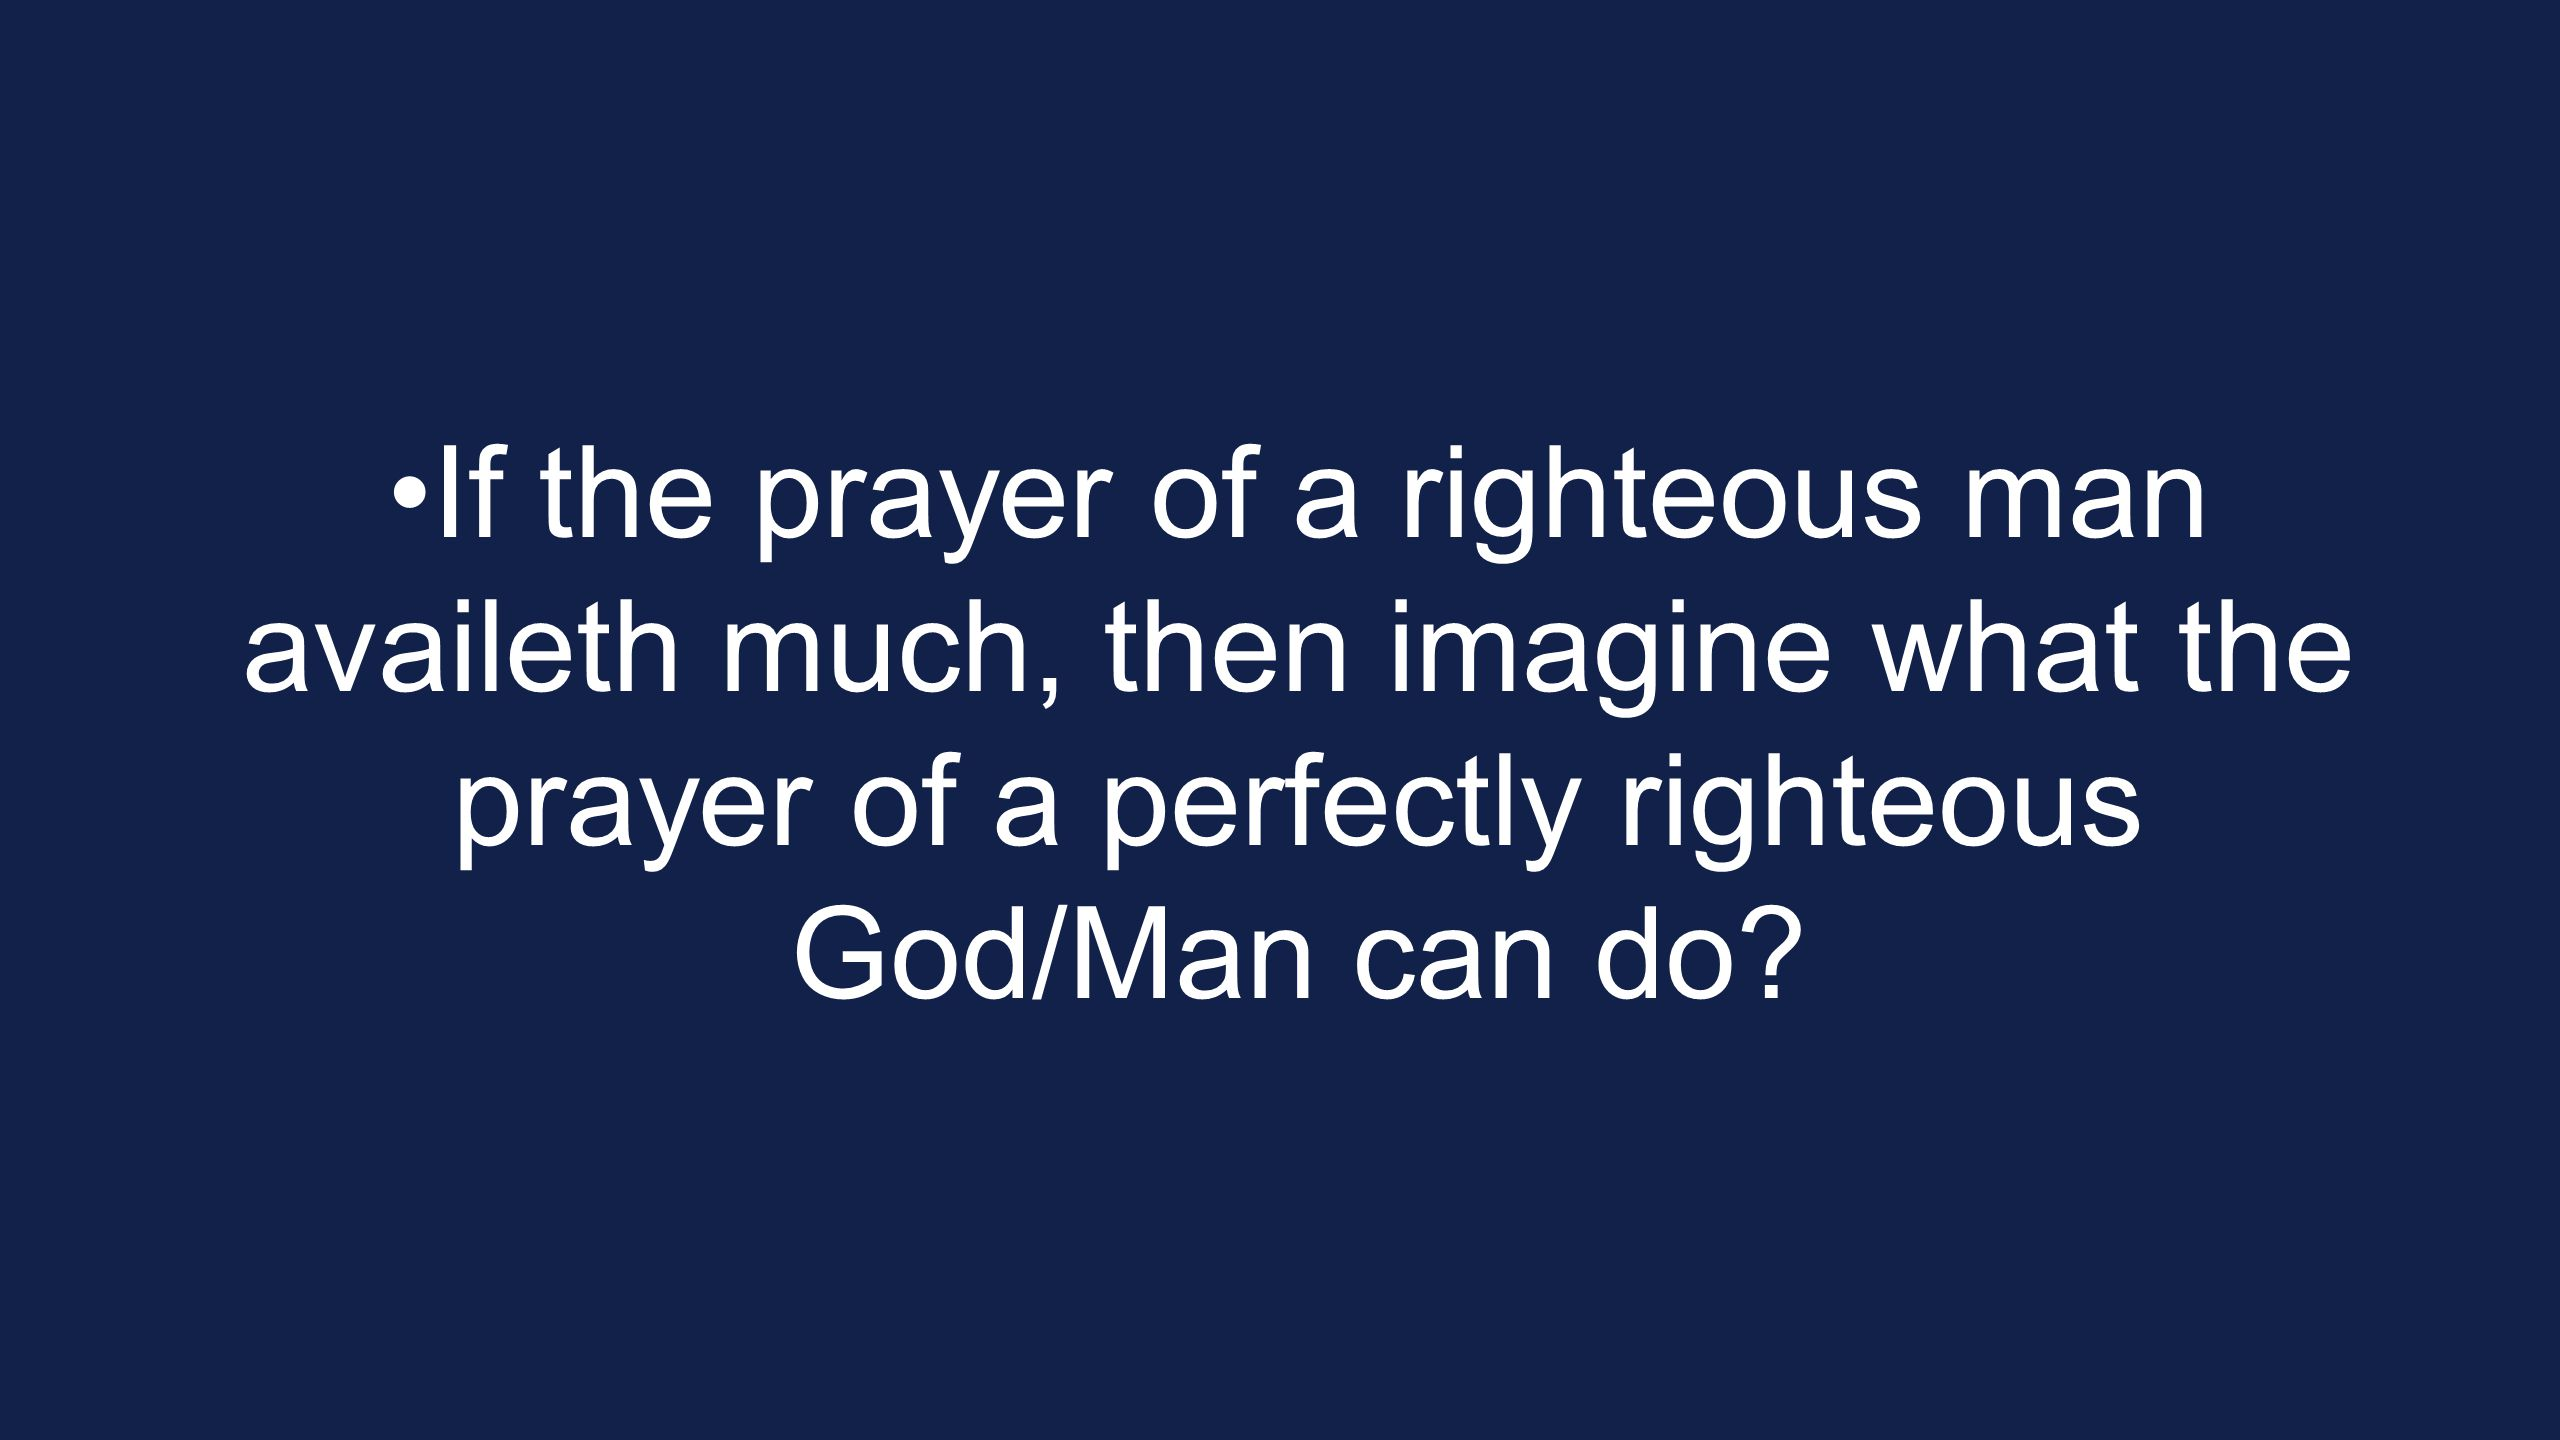 If the prayer of a righteous man availeth much, then imagine what the prayer of a perfectly righteous God/Man can do